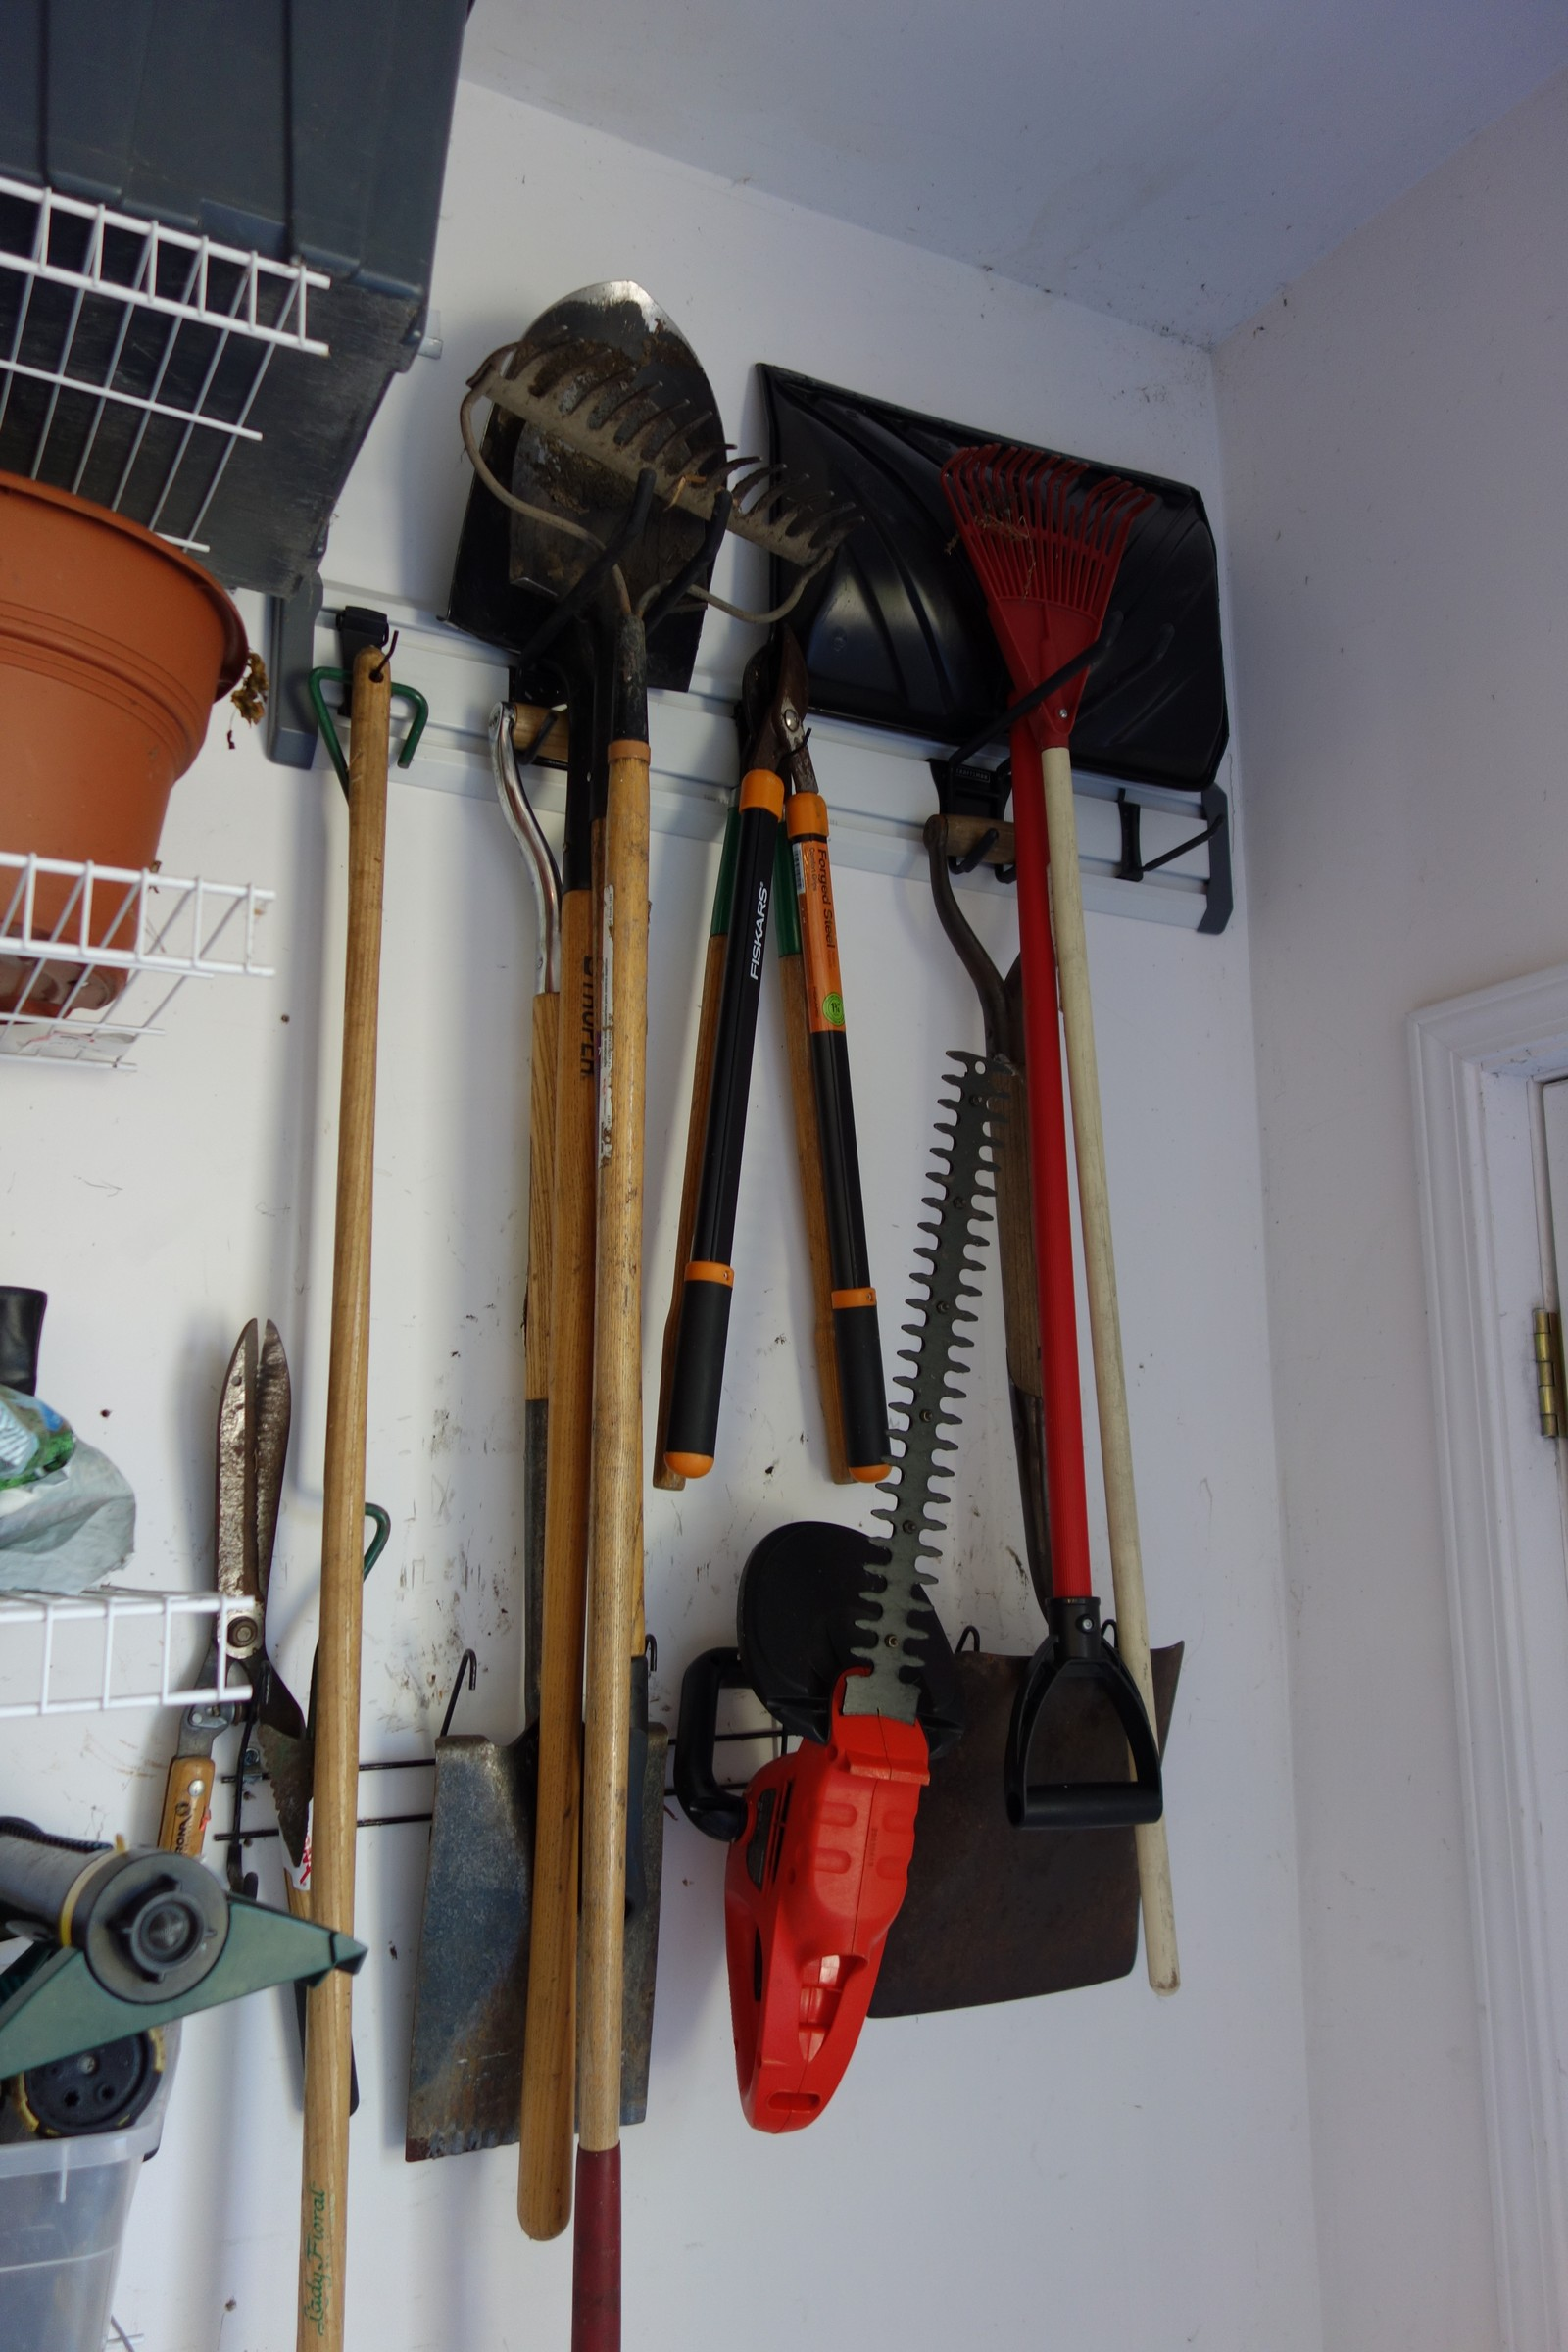 GearTrack high on my garage wall holds a ton of yard tools, and let's me put my wheelbarrow against the wall below it.